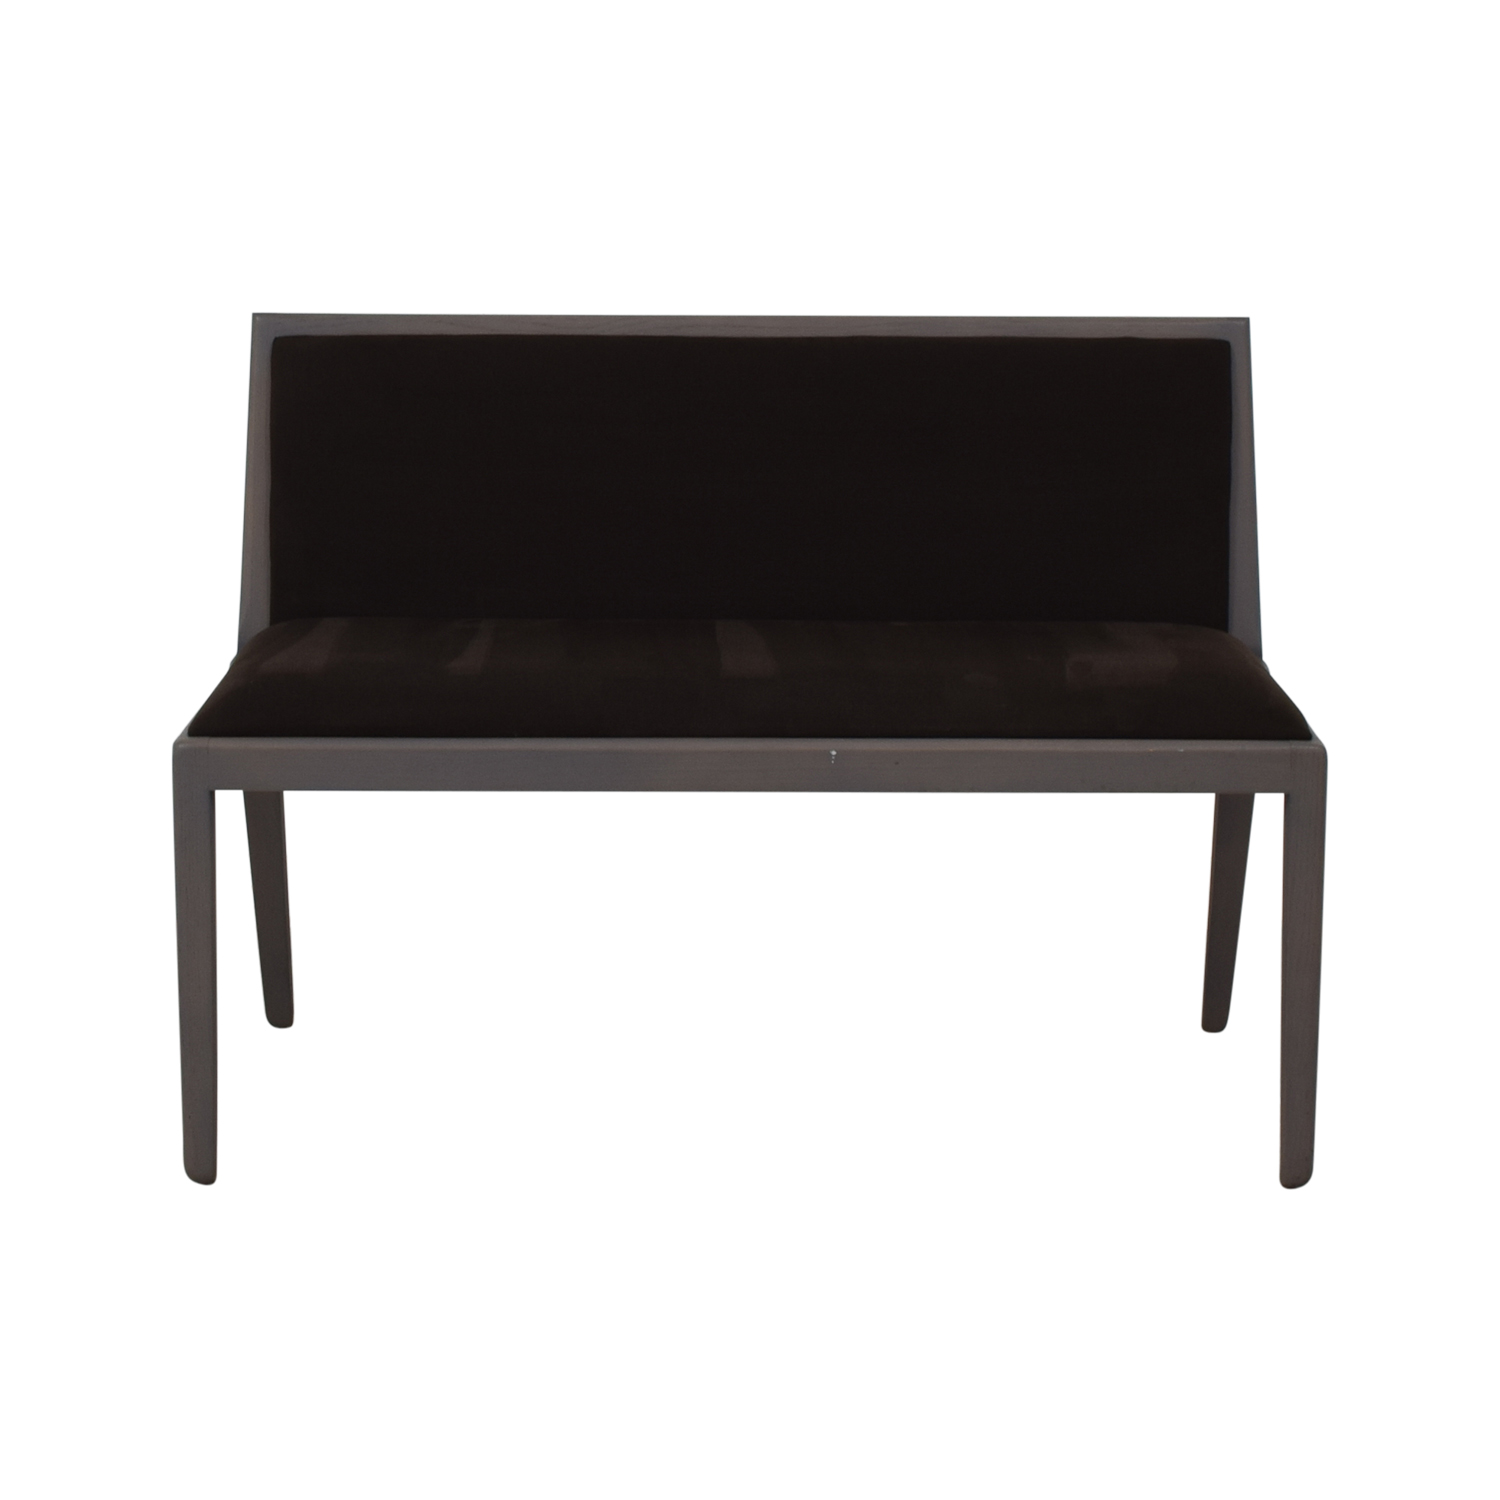 buy AVENUE ROAD EOL Banguette by Christopher Delcourt AVENUE ROAD Benches